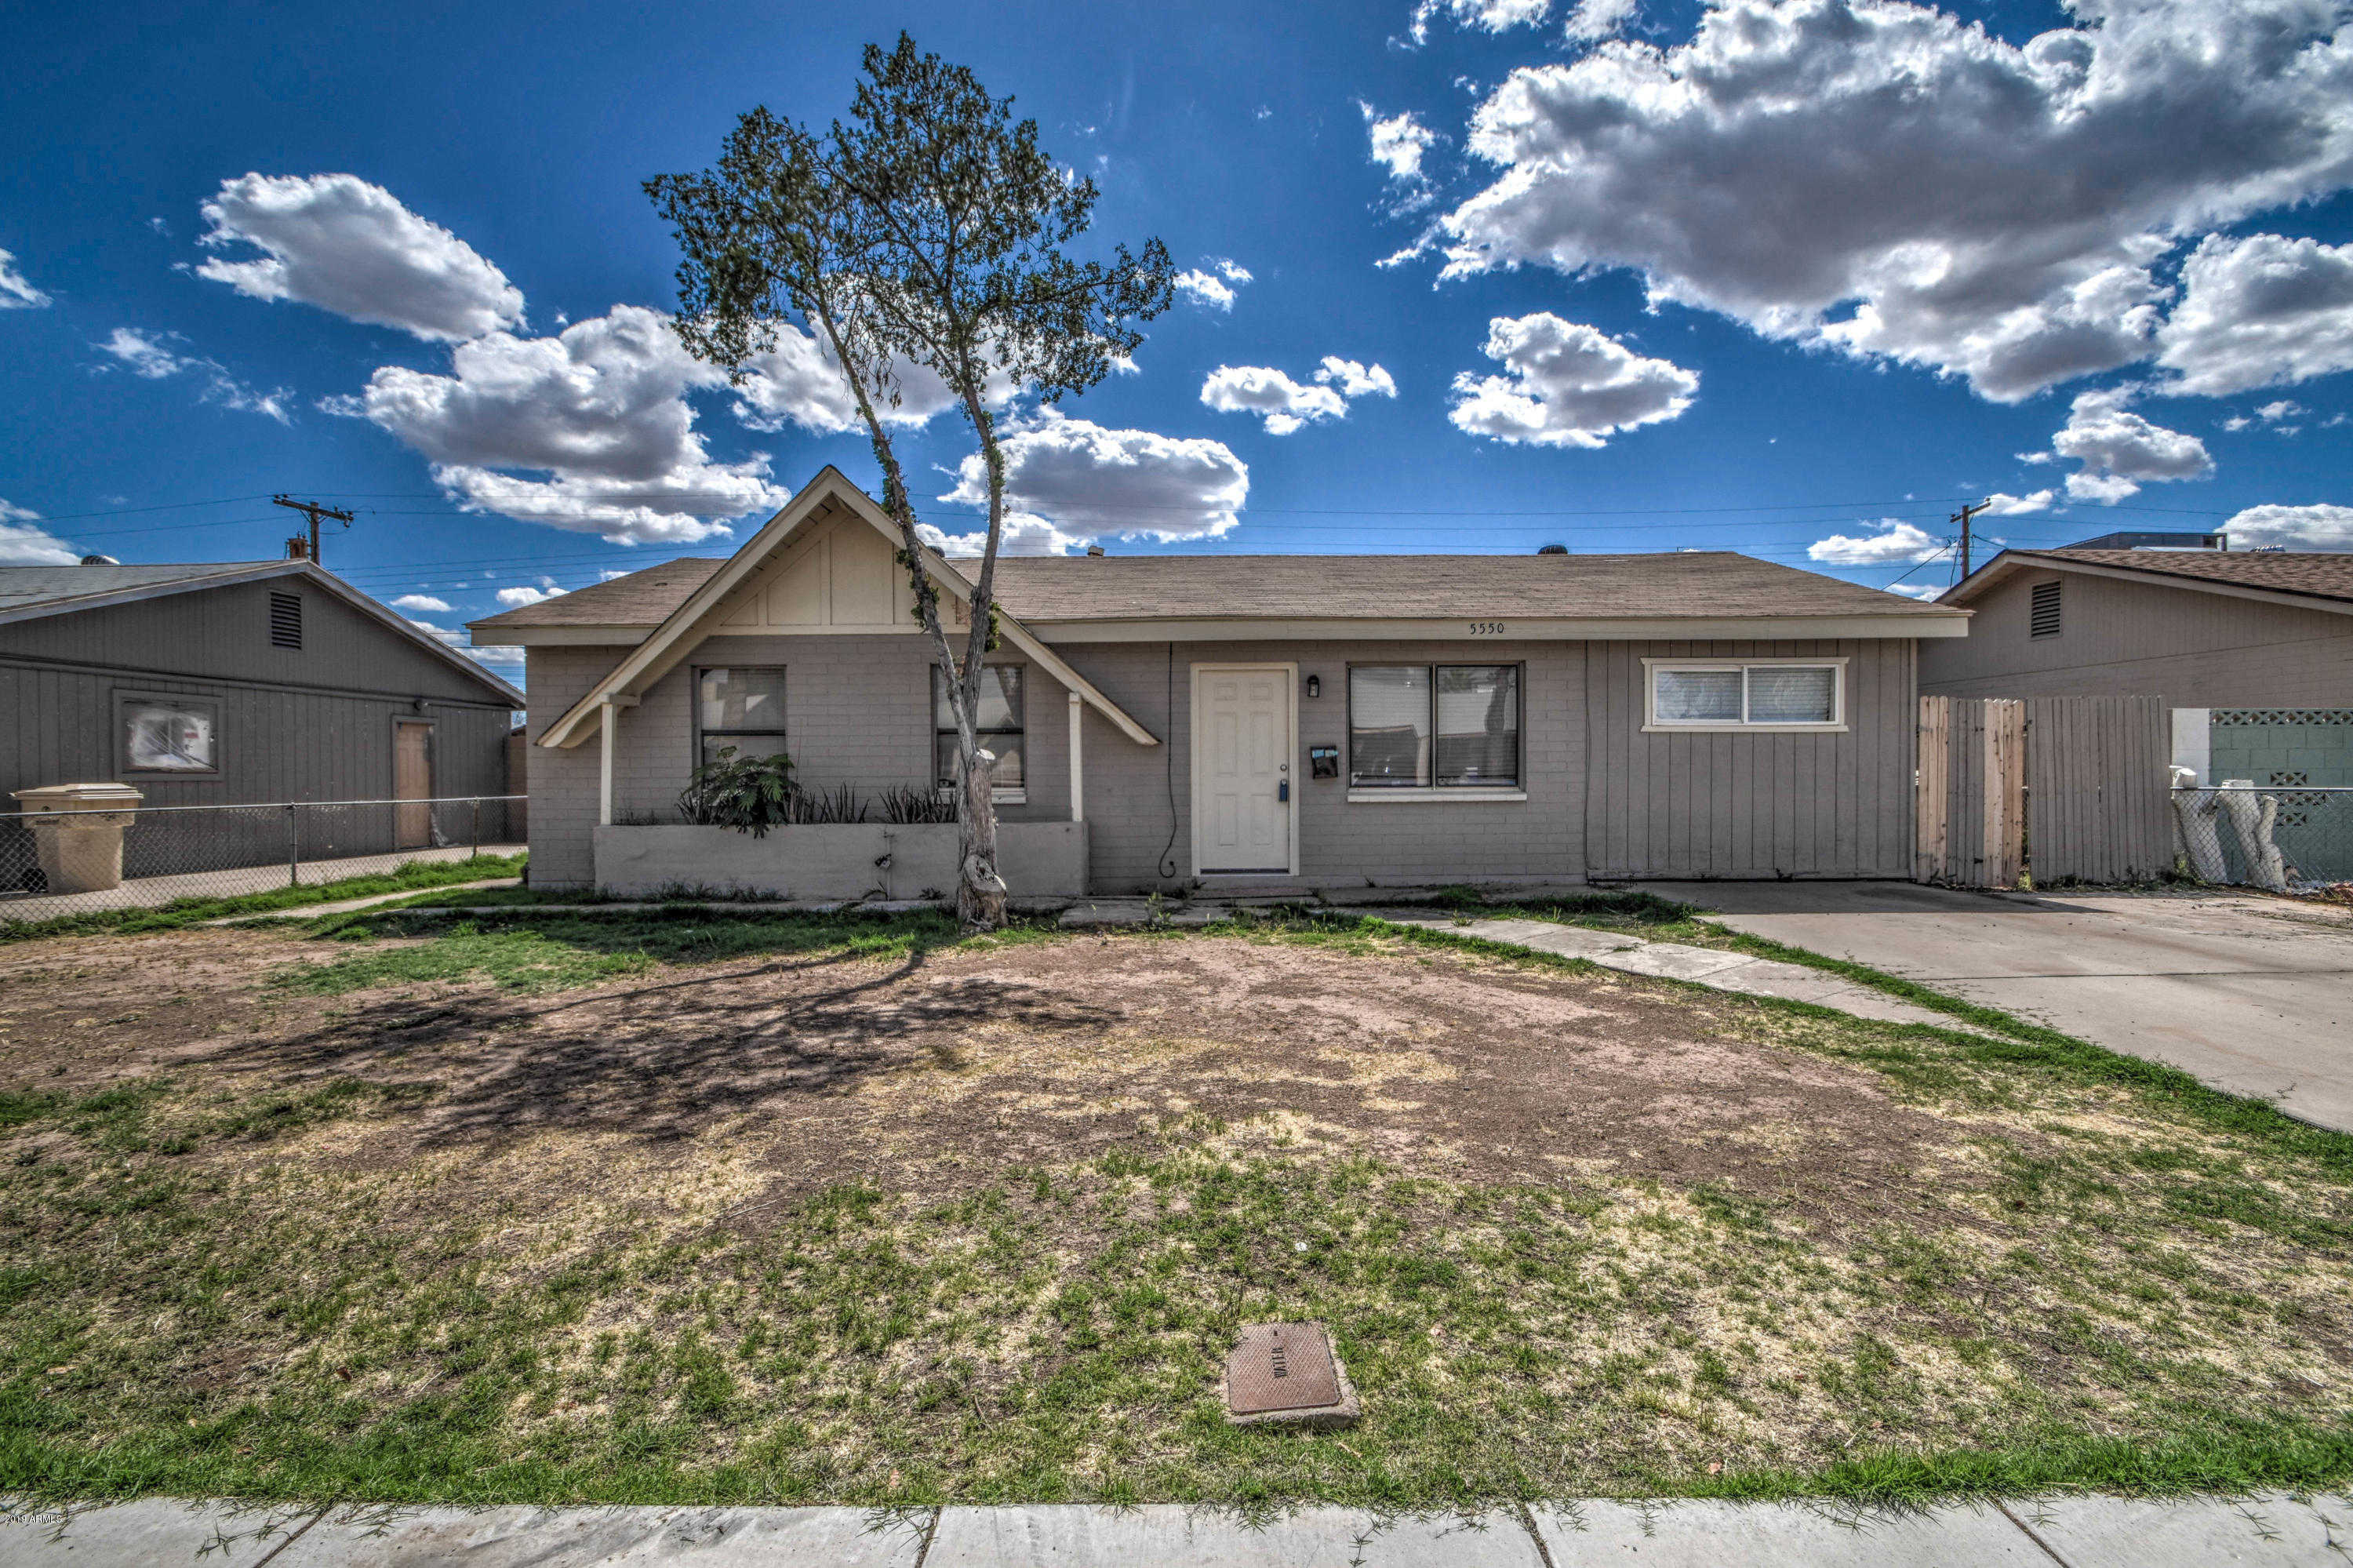 $219,900 - 4Br/2Ba - Home for Sale in Maryvale Terrace 20-a Lts 7490-7494, Glendale